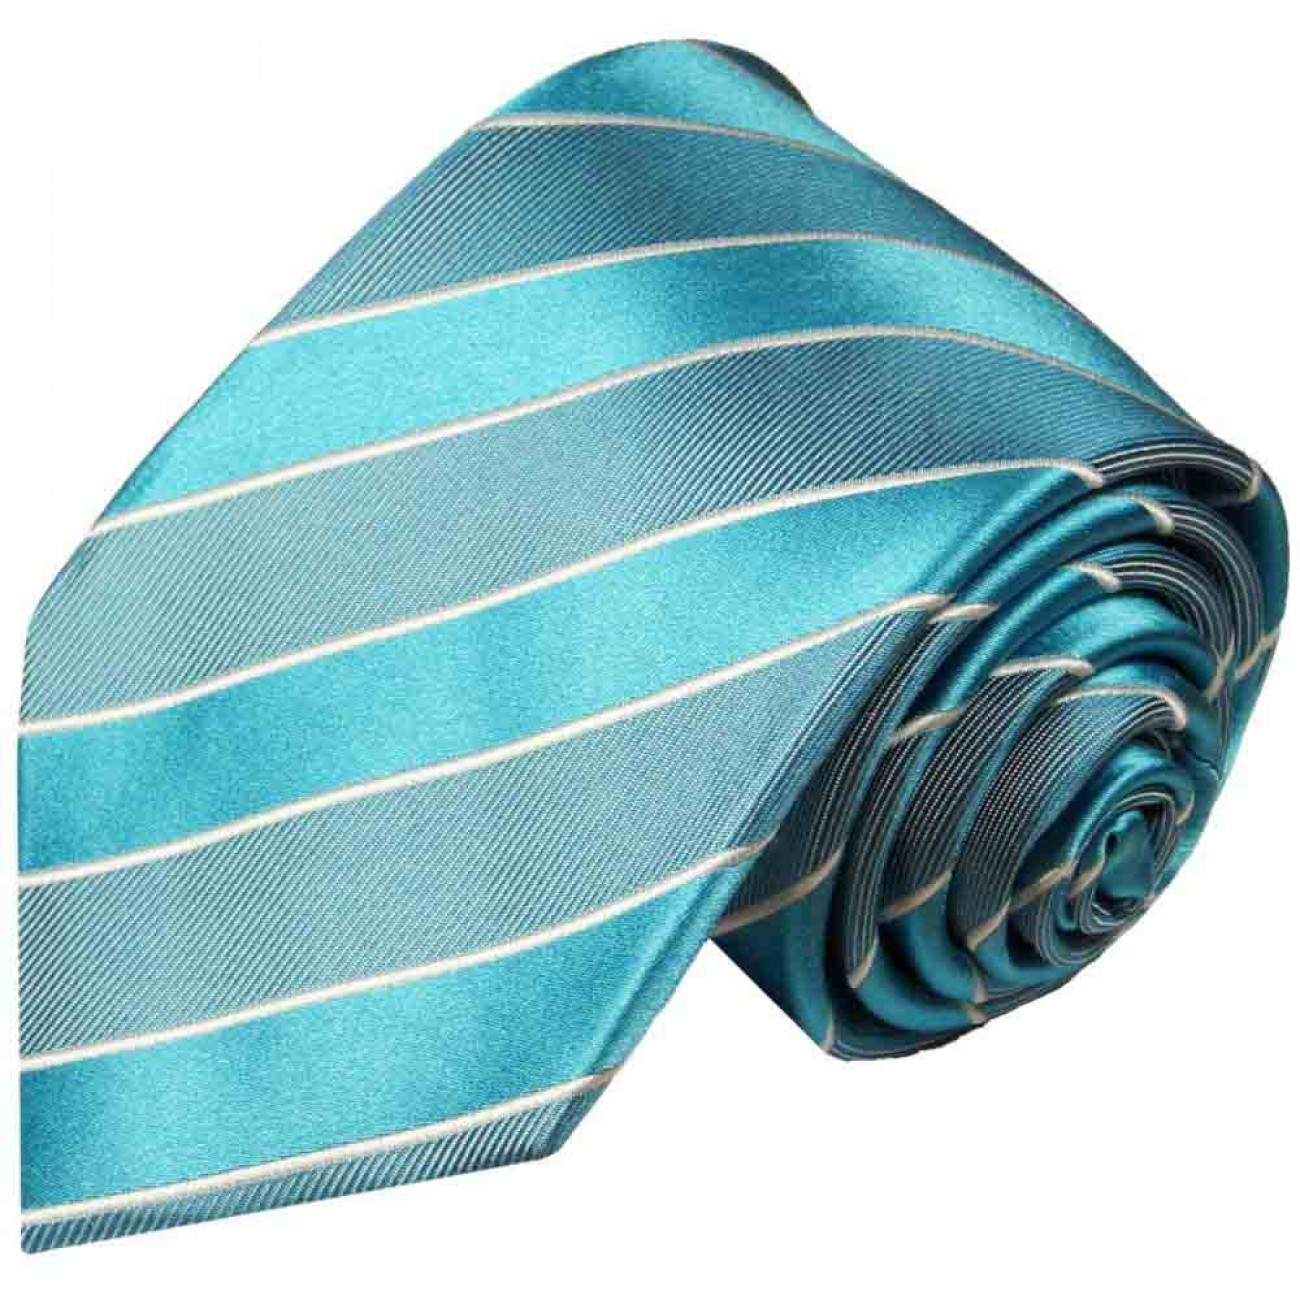 Turquoise striped necktie - silk mens tie and pocket square and cufflinks